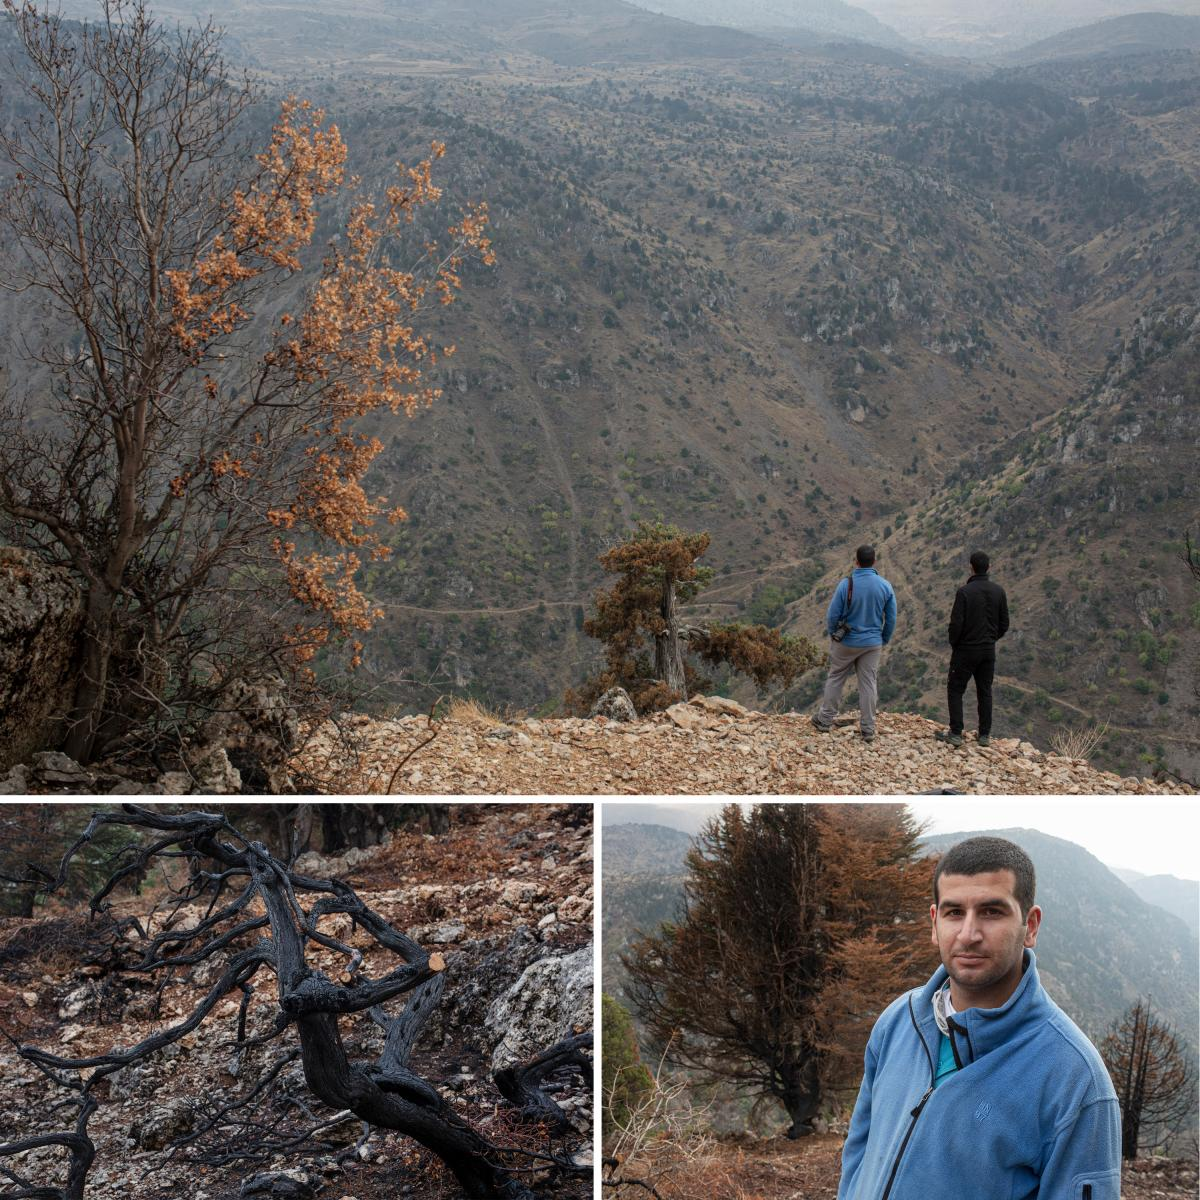 Khaled Taleb, 29, a conservationist who is the director and founder of Akkar Trail, and his brother Ali Taleb, 22, a botanist, look out over a valley from the site of a recent wildfire which burned a number of cedar trees, in the Mishmish forest. Left: A